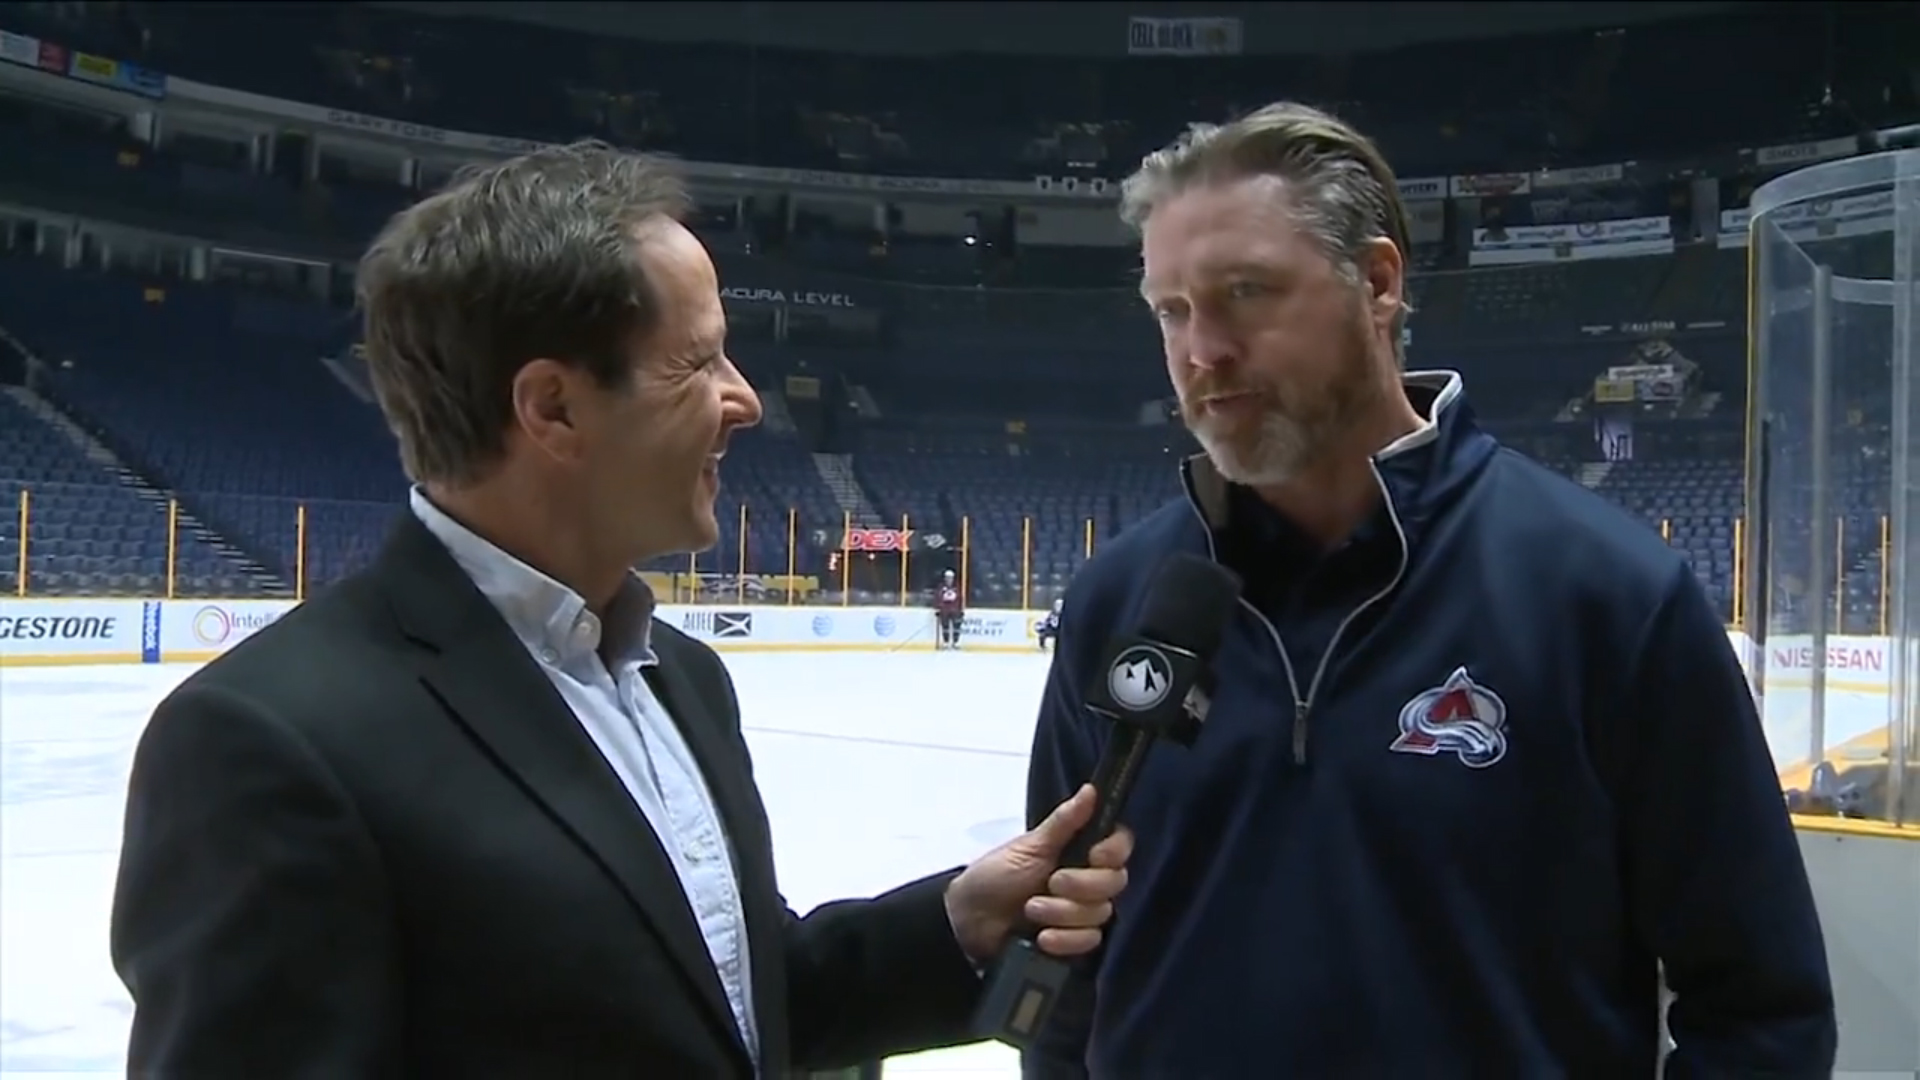 Patrick-Roy-Show-27-Coach-Interview.jpg